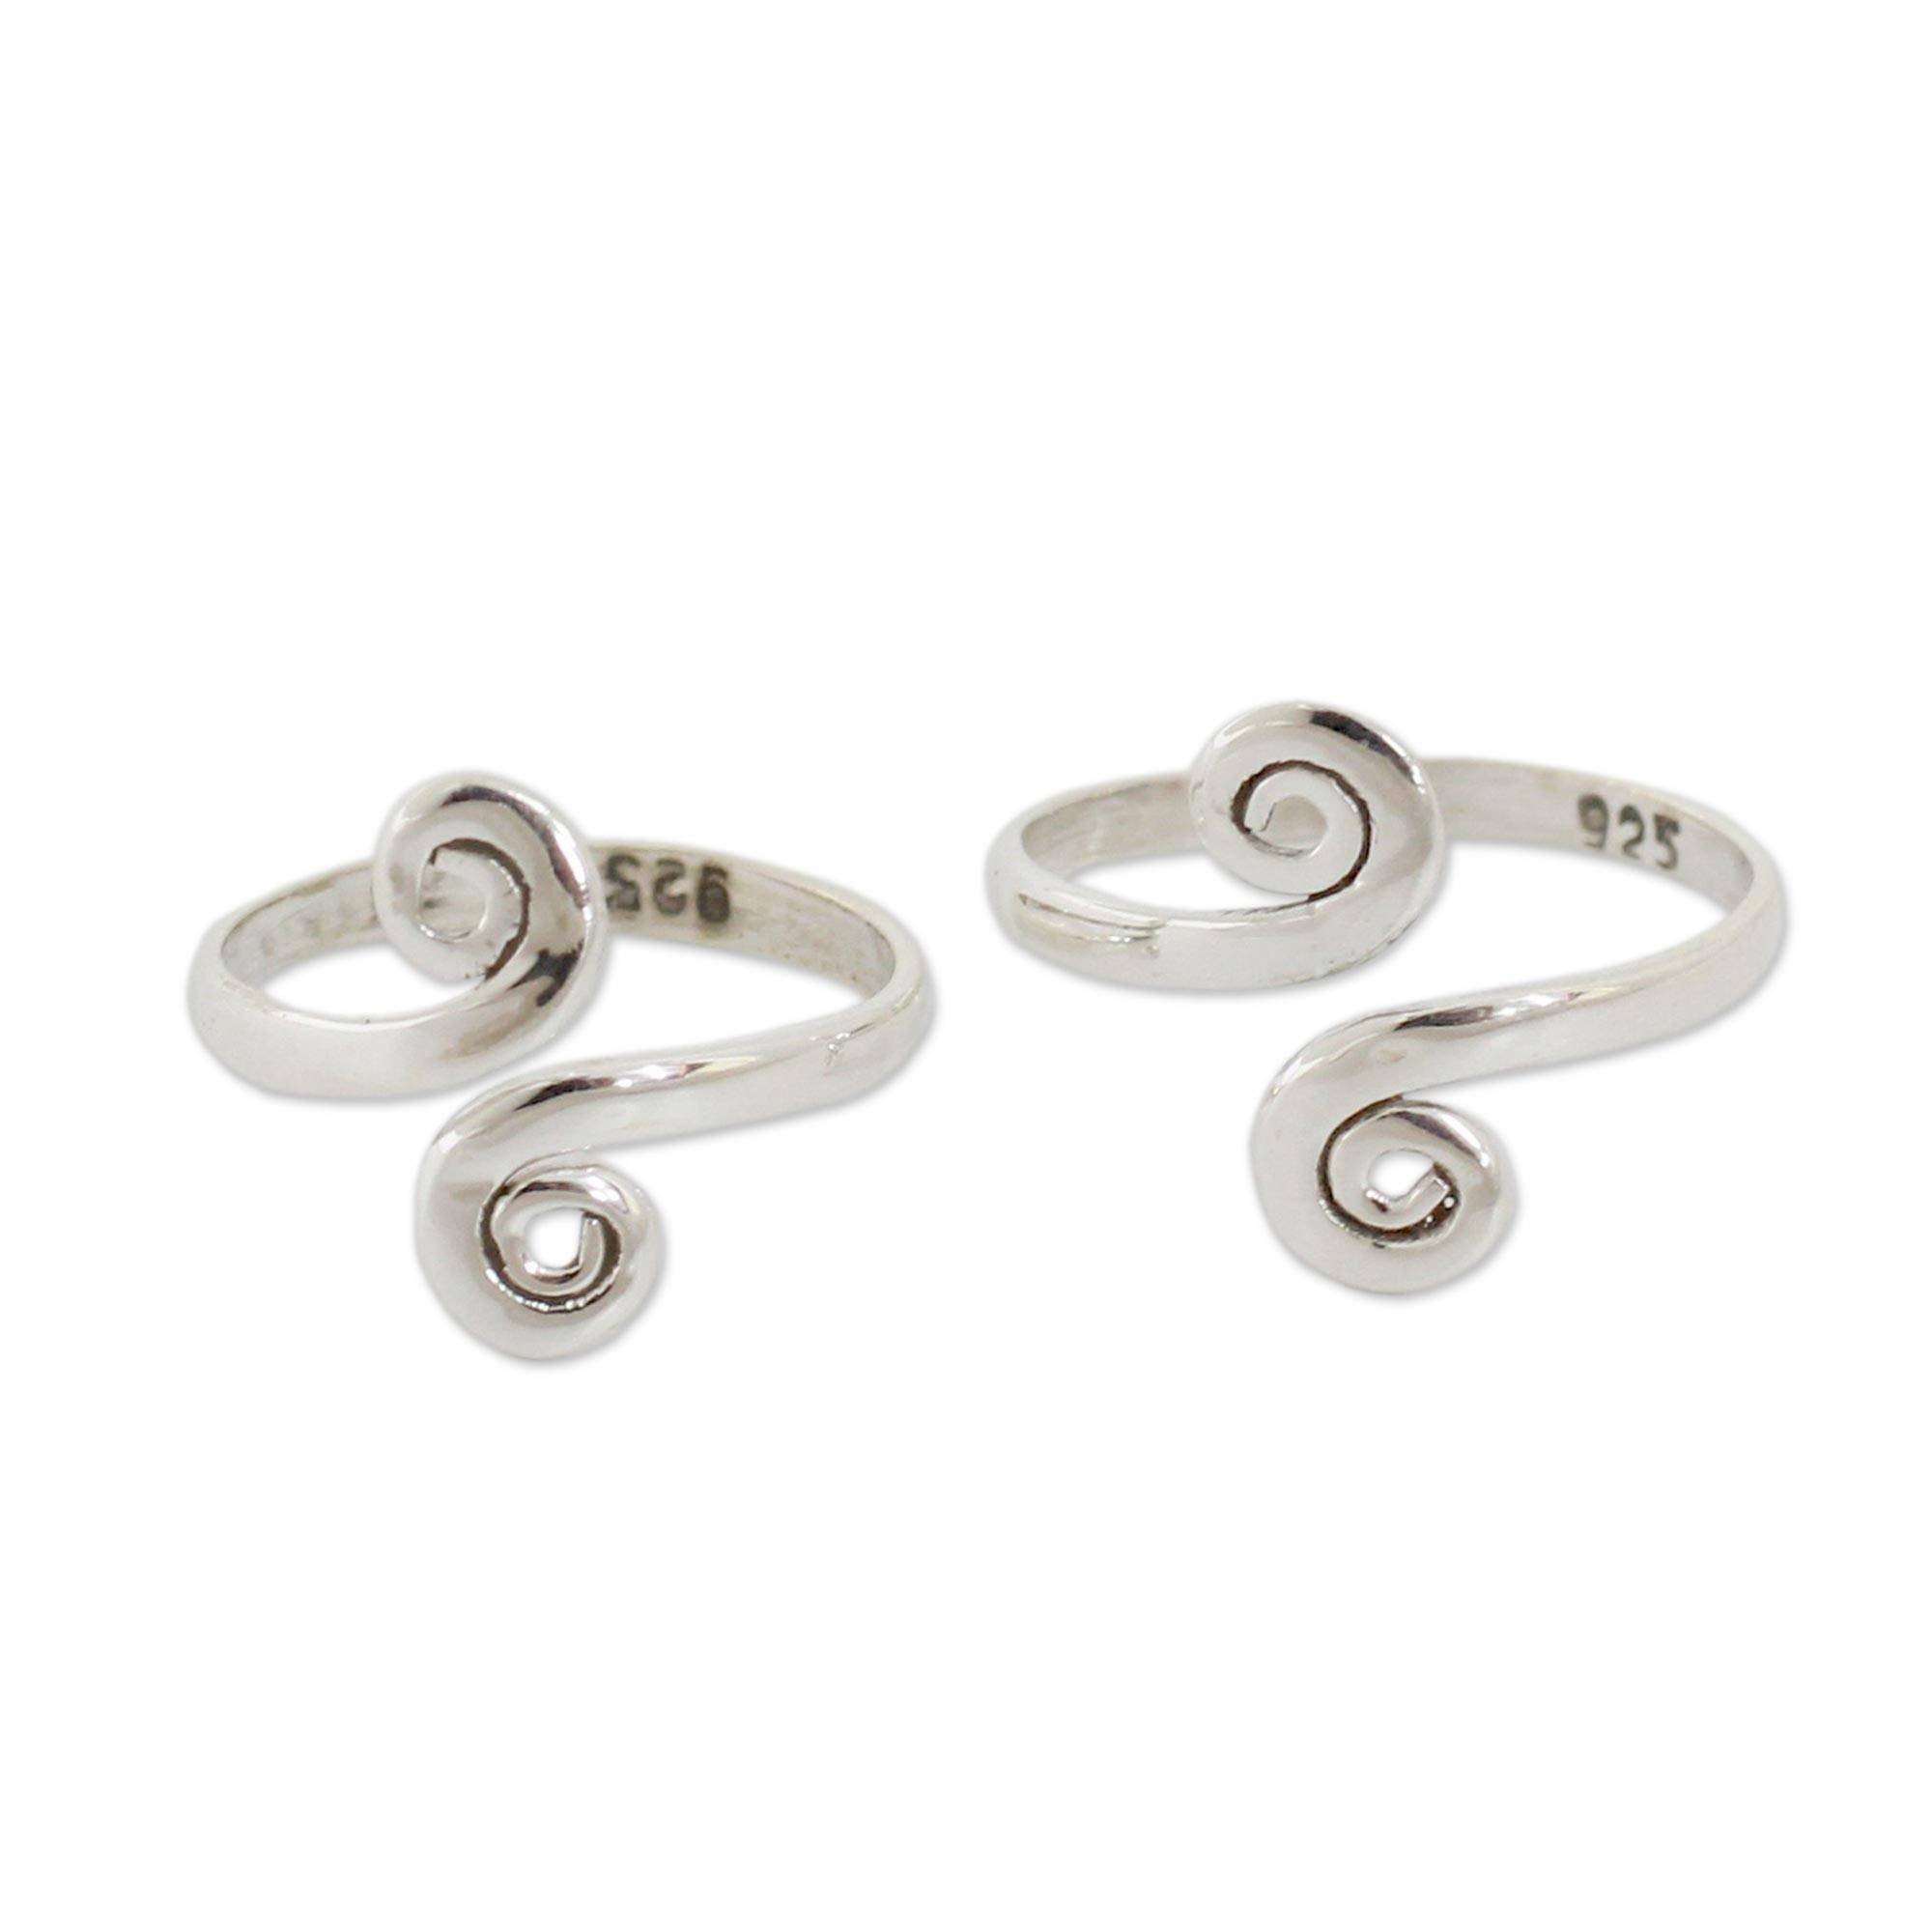 NOVICA Polished .925 Sterling Silver Spiral Adjustable Toe Rings 'Luminosity' (Pair, One Size) by NOVICA